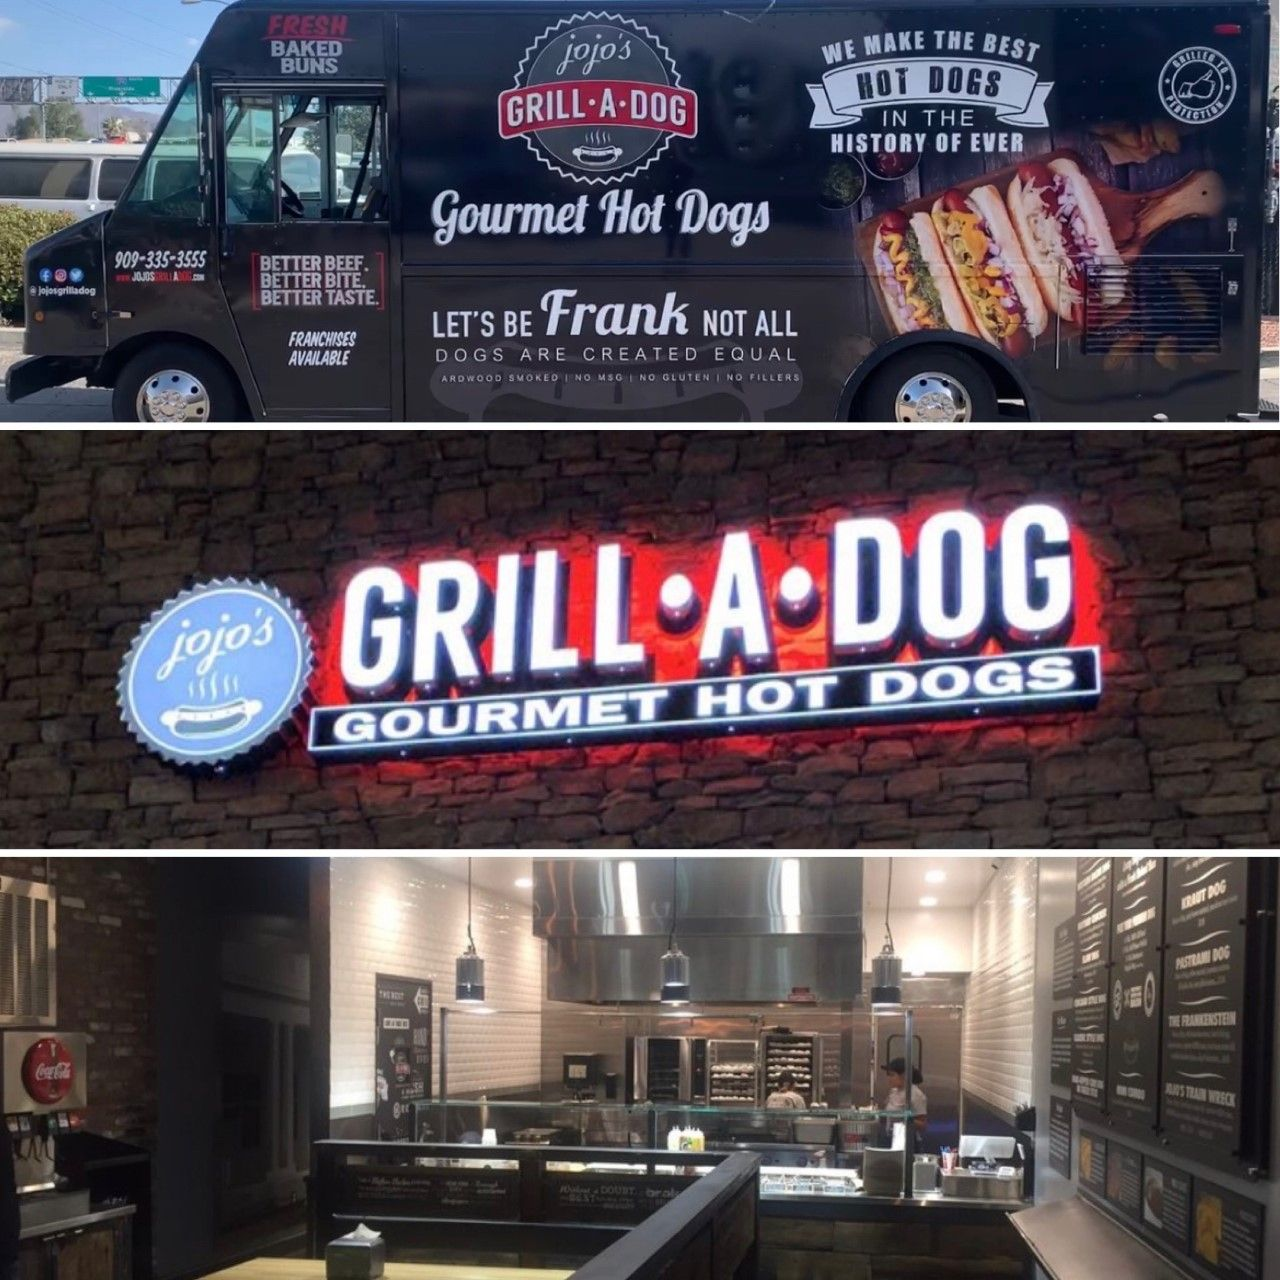 JoJo's Grill-A-Dog Announces New Franchise Location in California